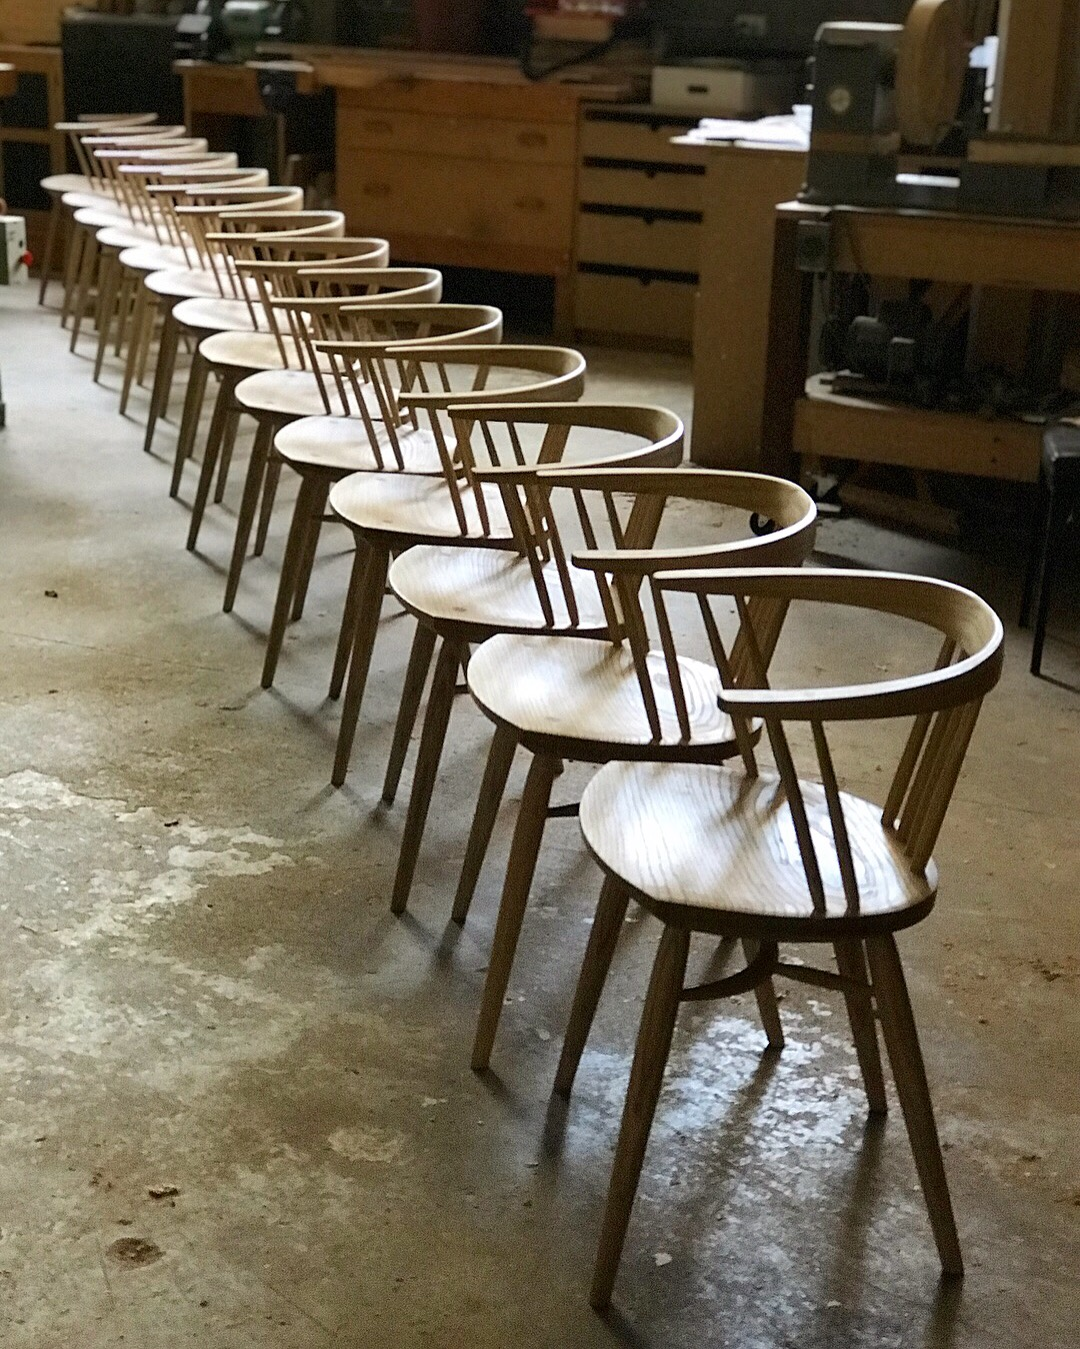 completed chair fourteens.jpeg